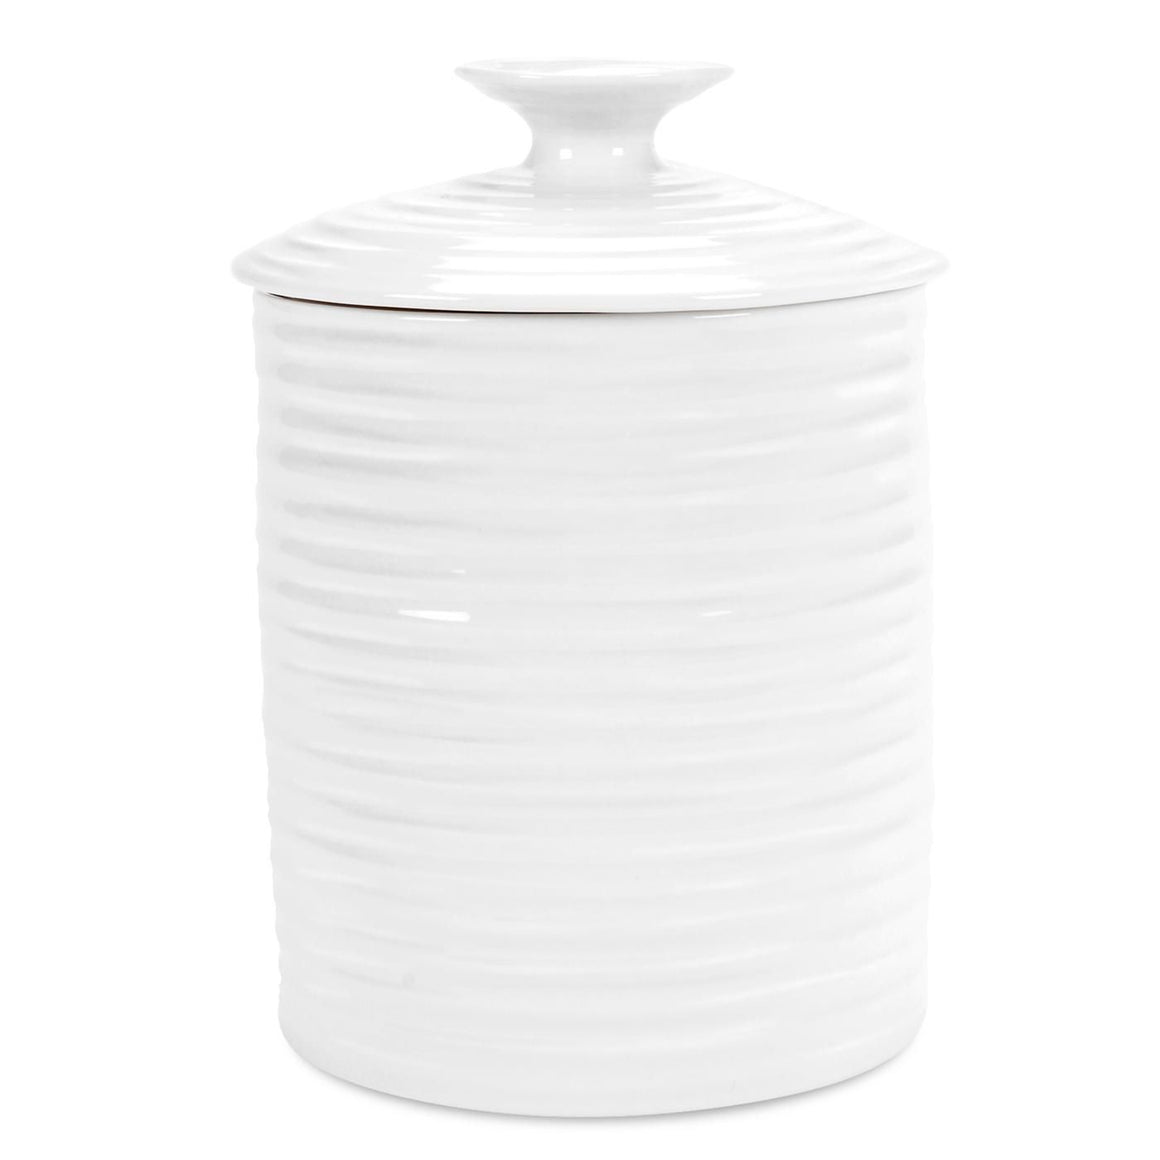 Sophie Conran Medium Storage Jar